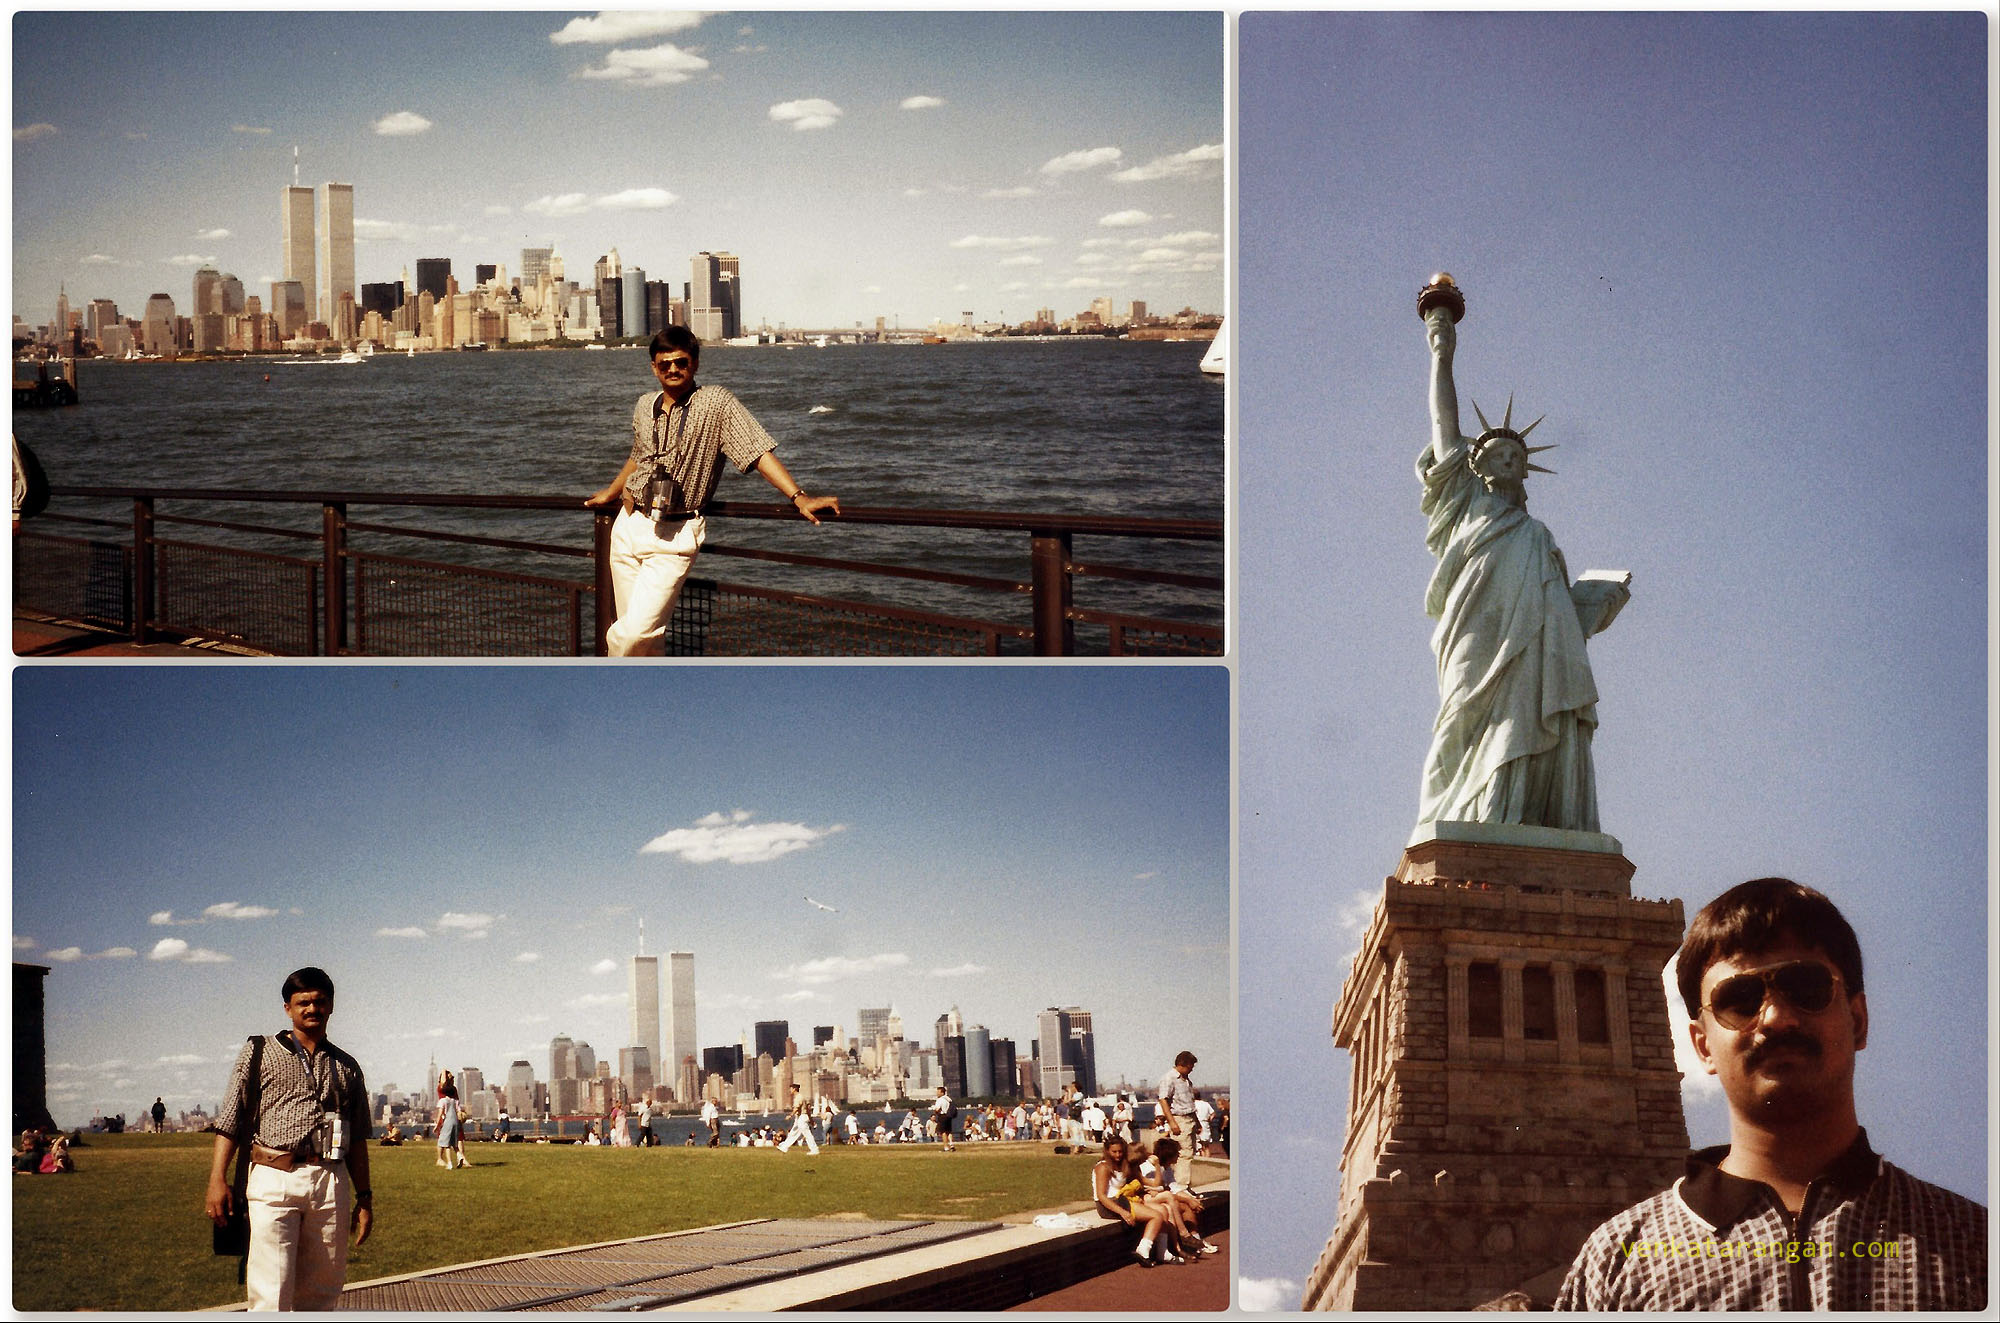 The Statue of Liberty, Liberty Island, New York Harbor in 1999